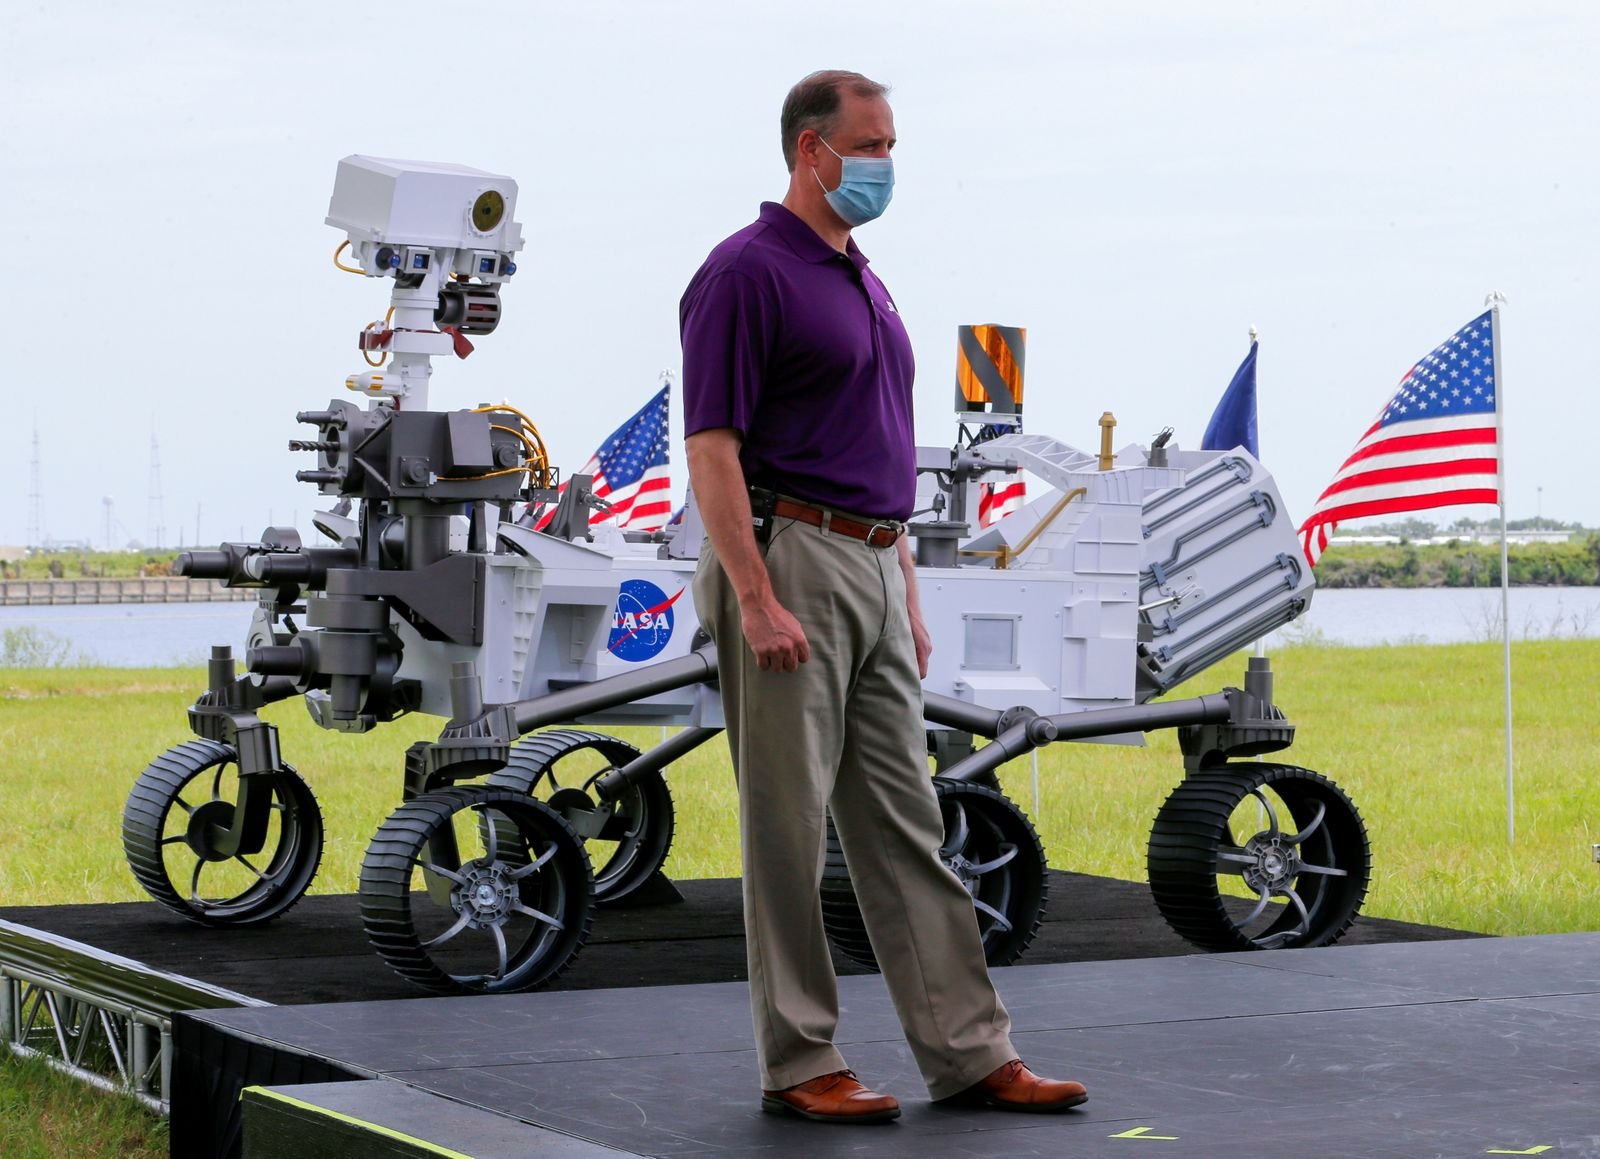 FILE PHOTO: NASA Administrator Jim Bridenstine stands next to a replica of the Mars 2020 Perseverance Rover during a press conference, at the Kennedy Space Center in Cape Canaveral